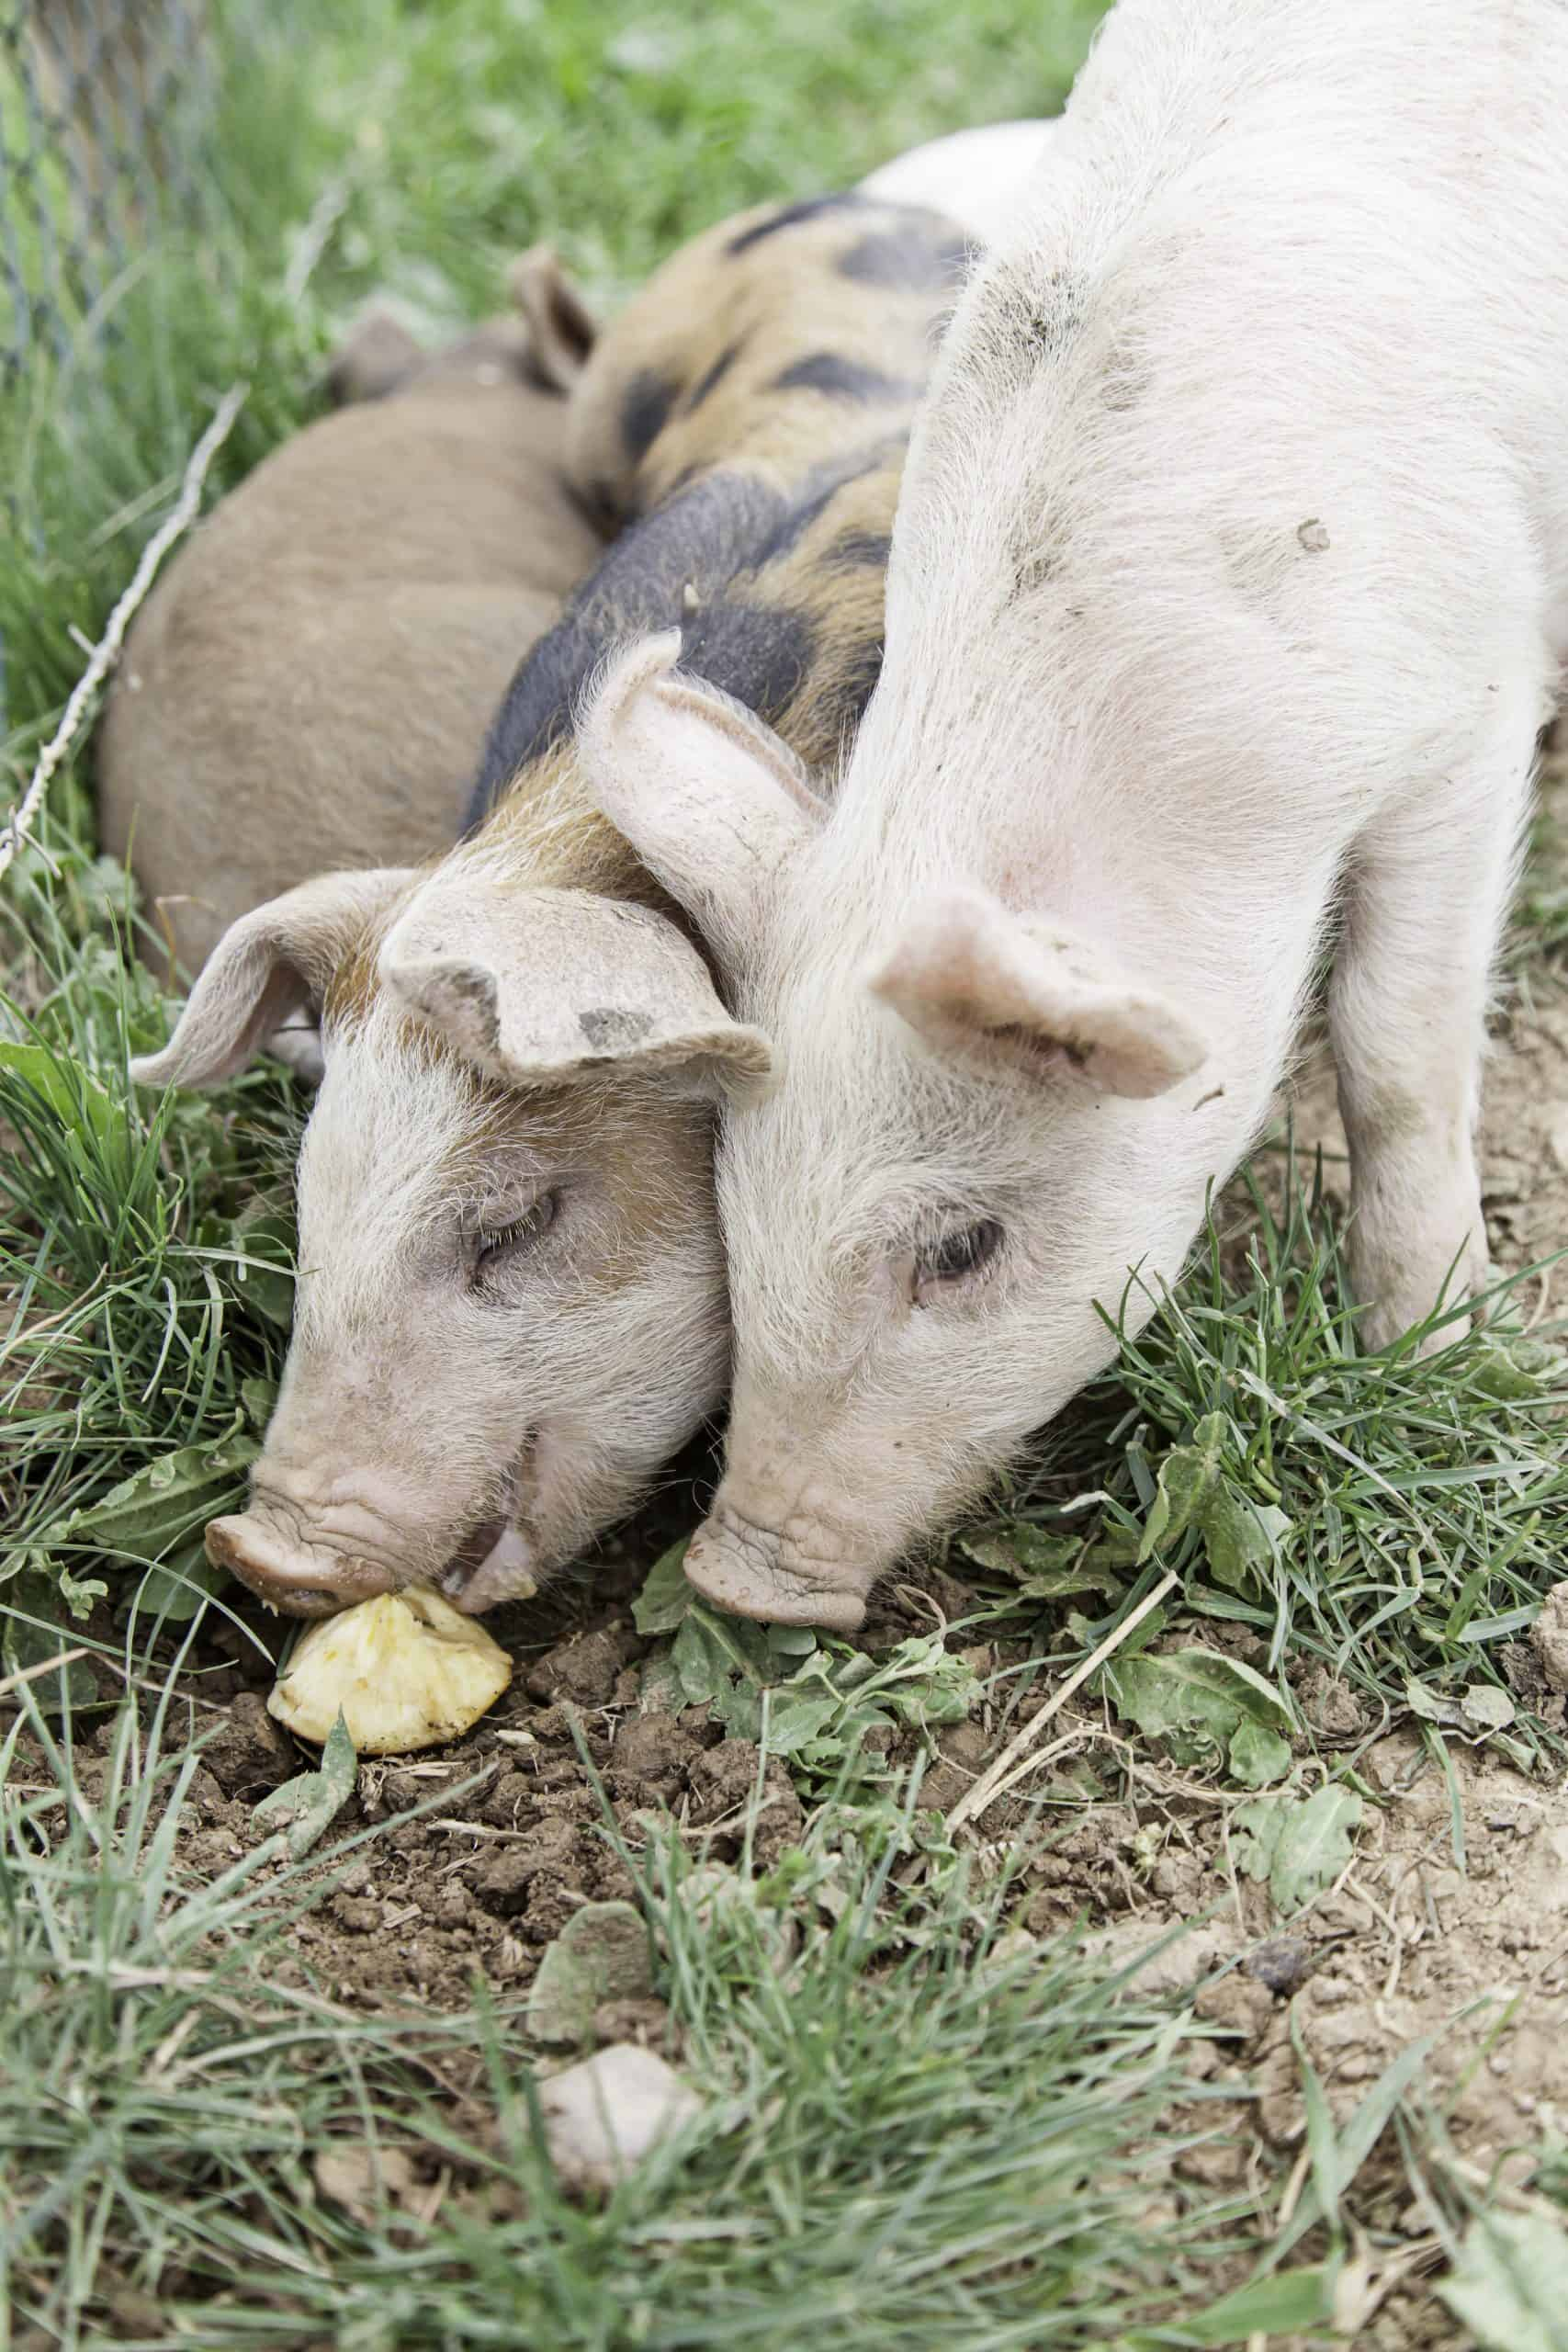 What do pigs eat